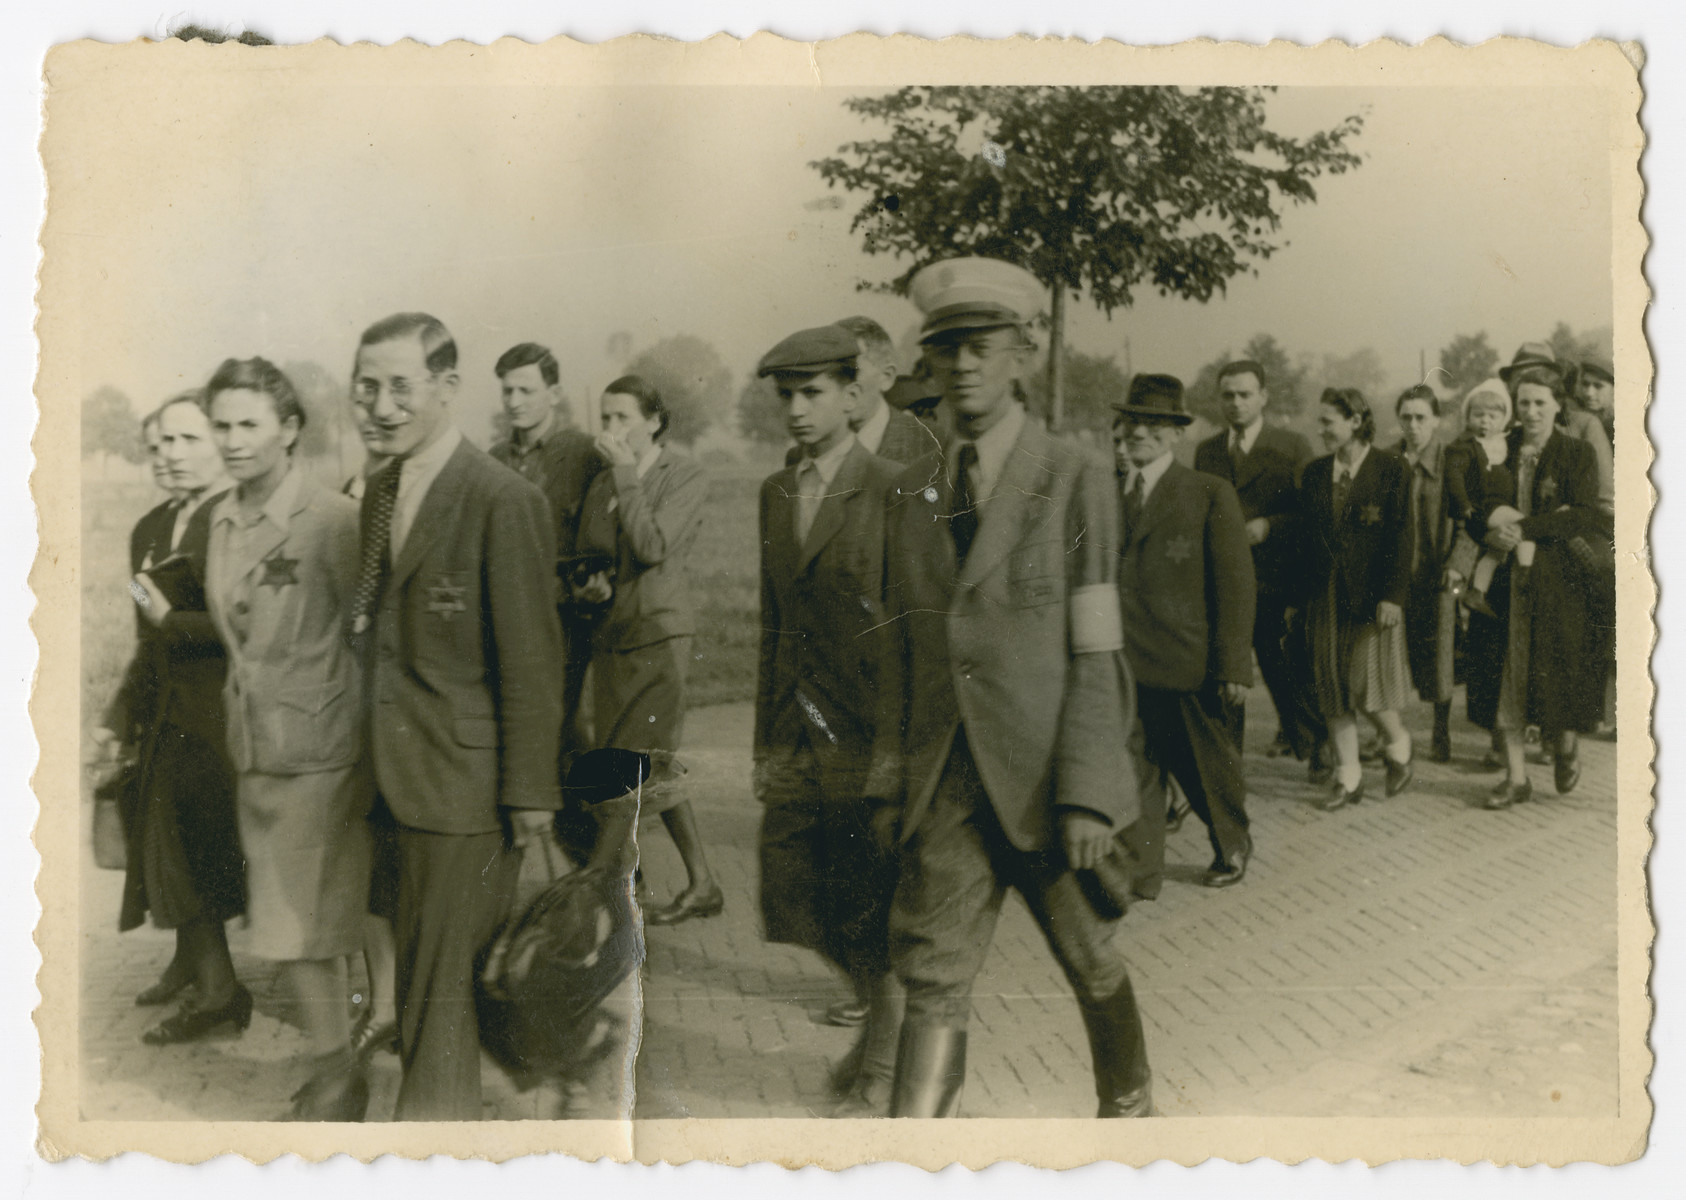 Jews march down a street in Bedzin accmpanied by a Jewish policeman.  Henri and Esther Borzykowski (nee Fiszer) pictured in the back right walk in a line during their time in Bedzin. The two married before the war and survived the camps. Esther's father Srul Fiszer is pictured in front of the couple in a top hat.